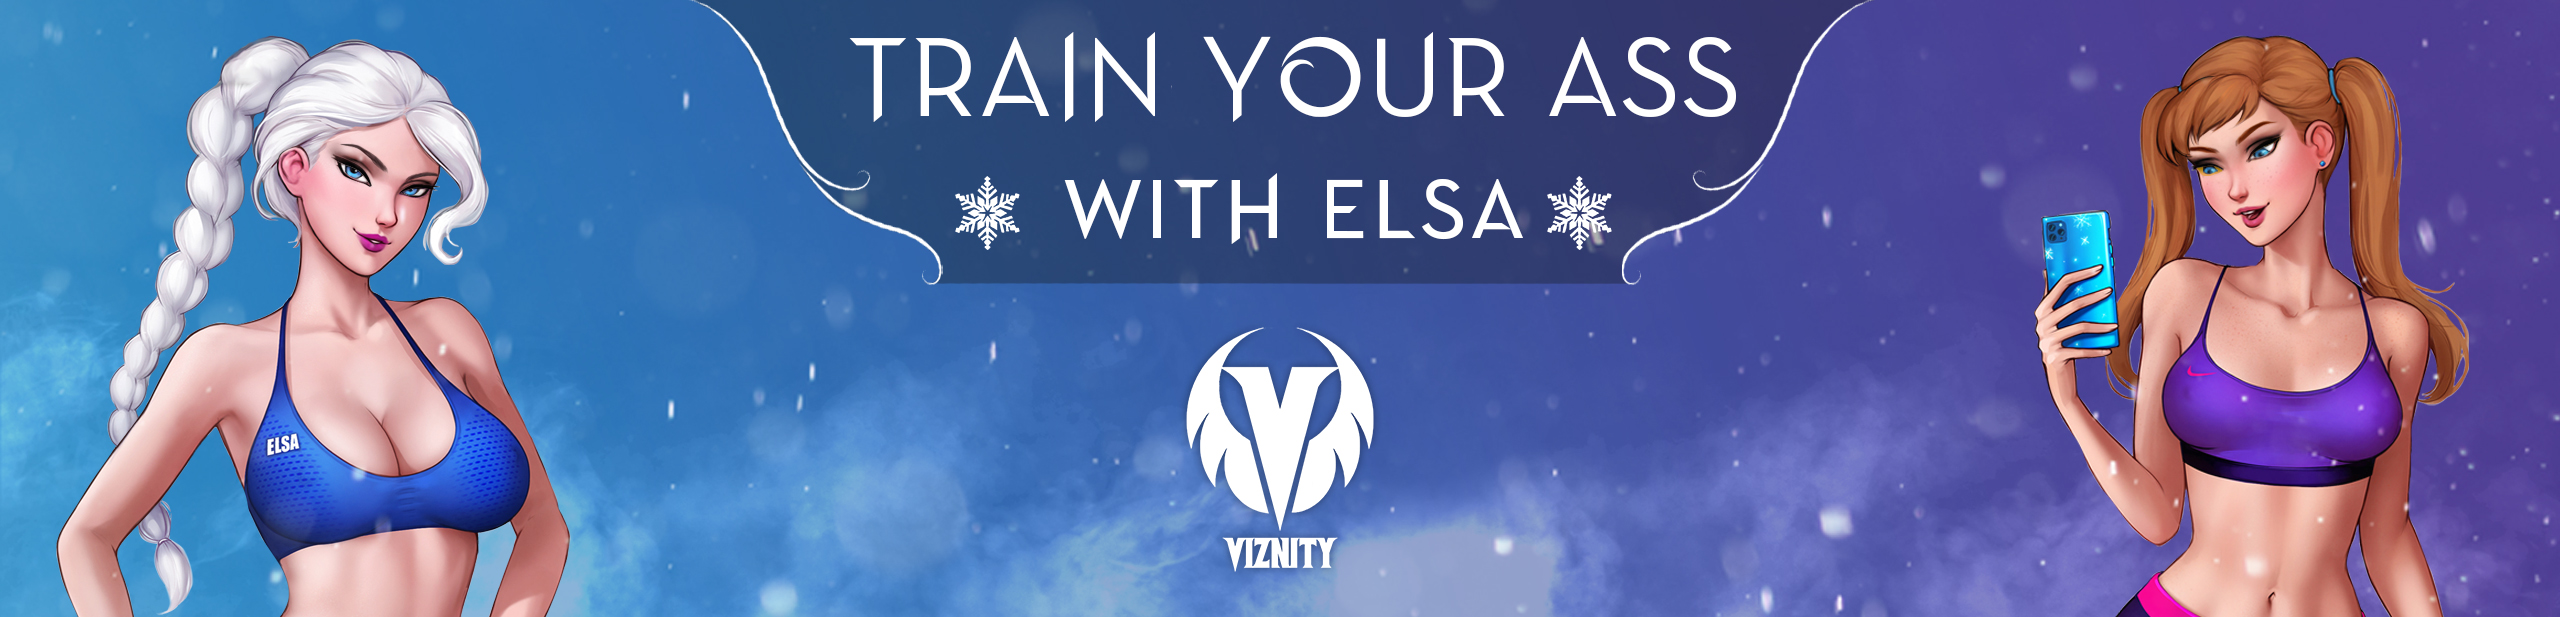 Train Your Ass With Elsa v1.0a